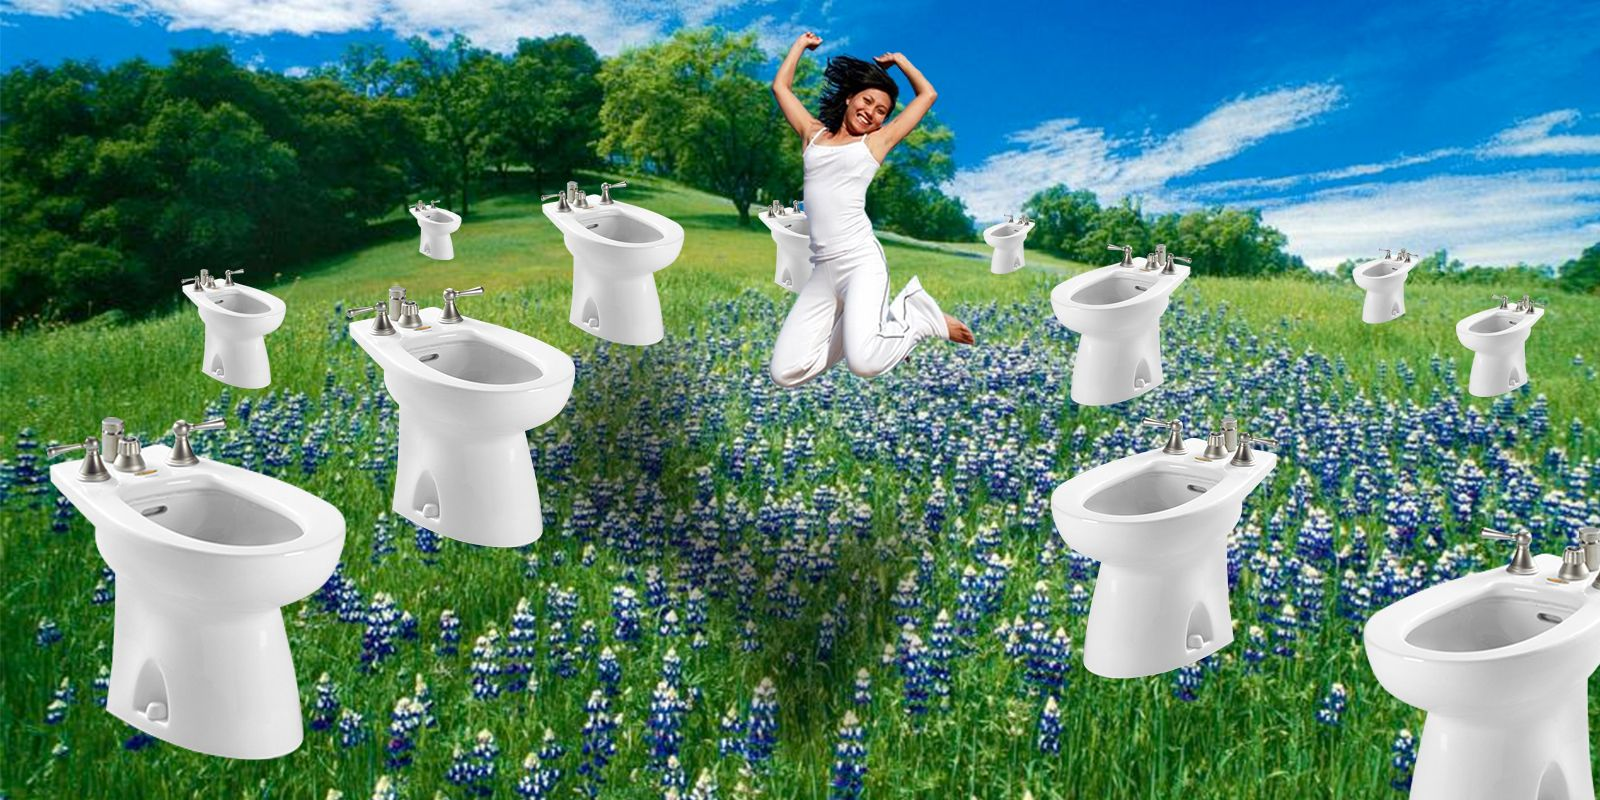 There's never been a better time to buy a bidet